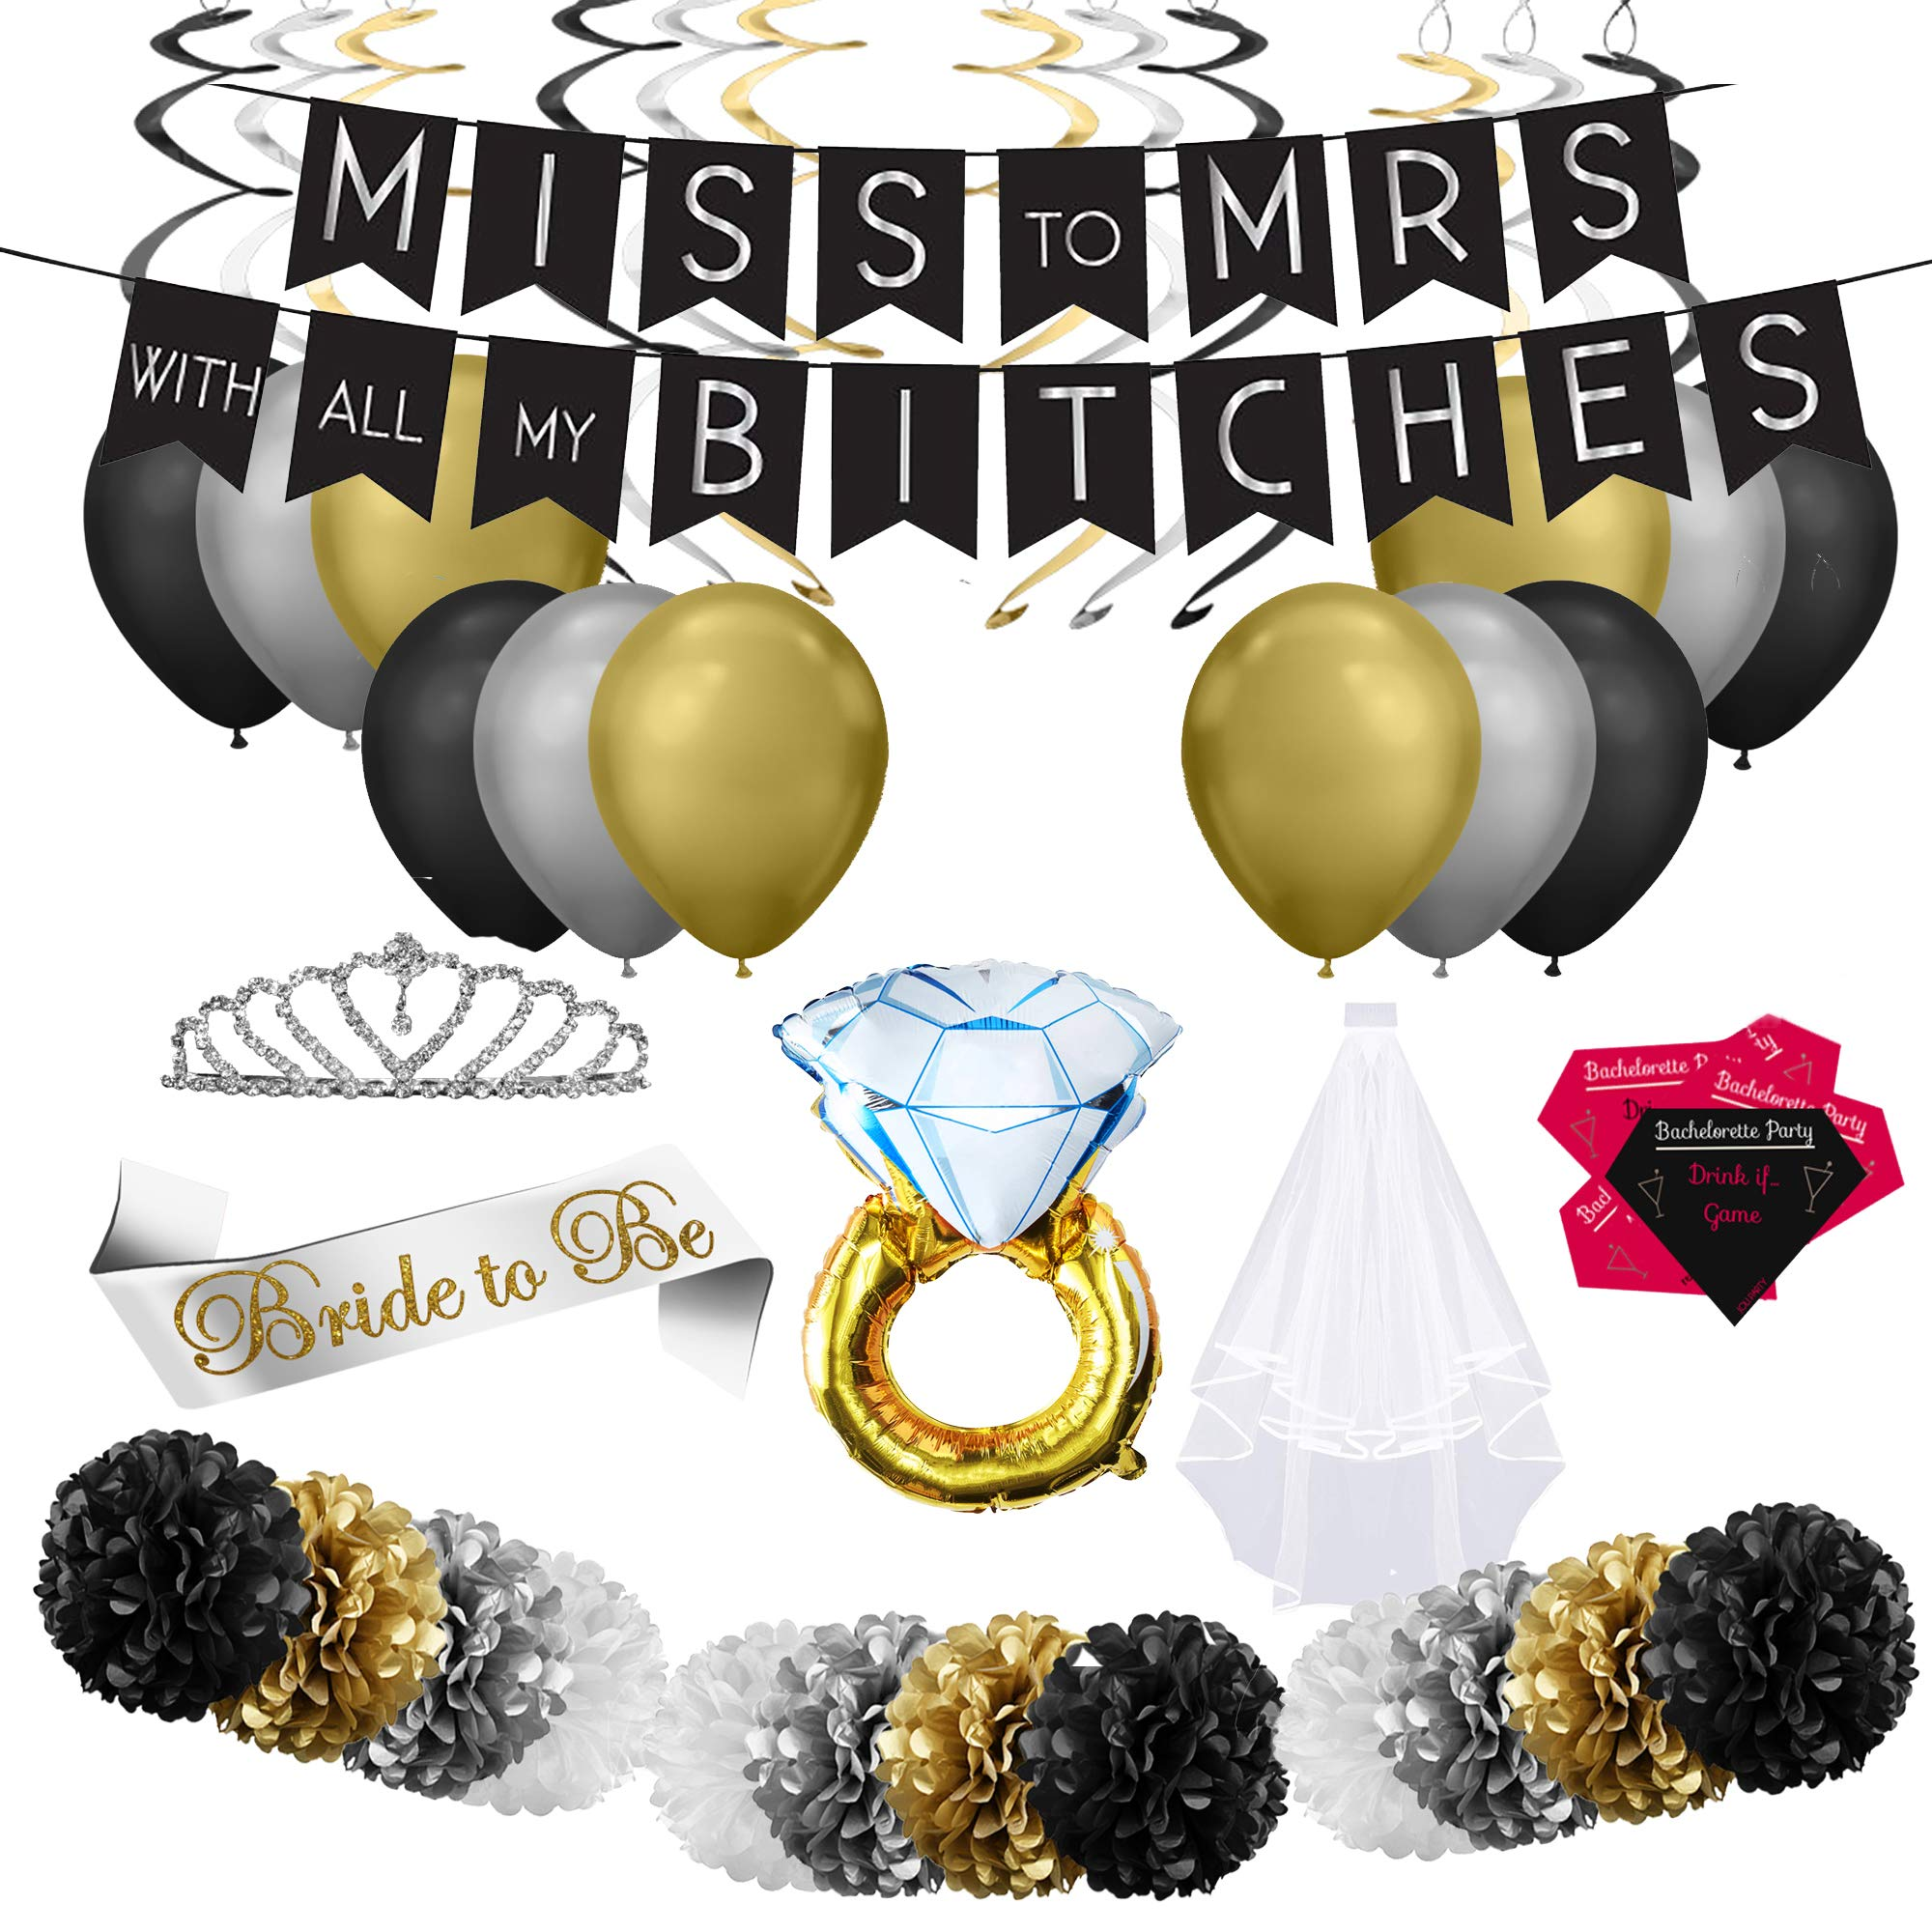 Joli - Bachelorette Party Decorations Kit, Bridal Shower, Hen Night Bundle For Girls Night In or Out. With Accessories, Supplies and Games. Balloons, Banner, Pompoms, Swirls, Veil, Sash, Tiara, Cards.